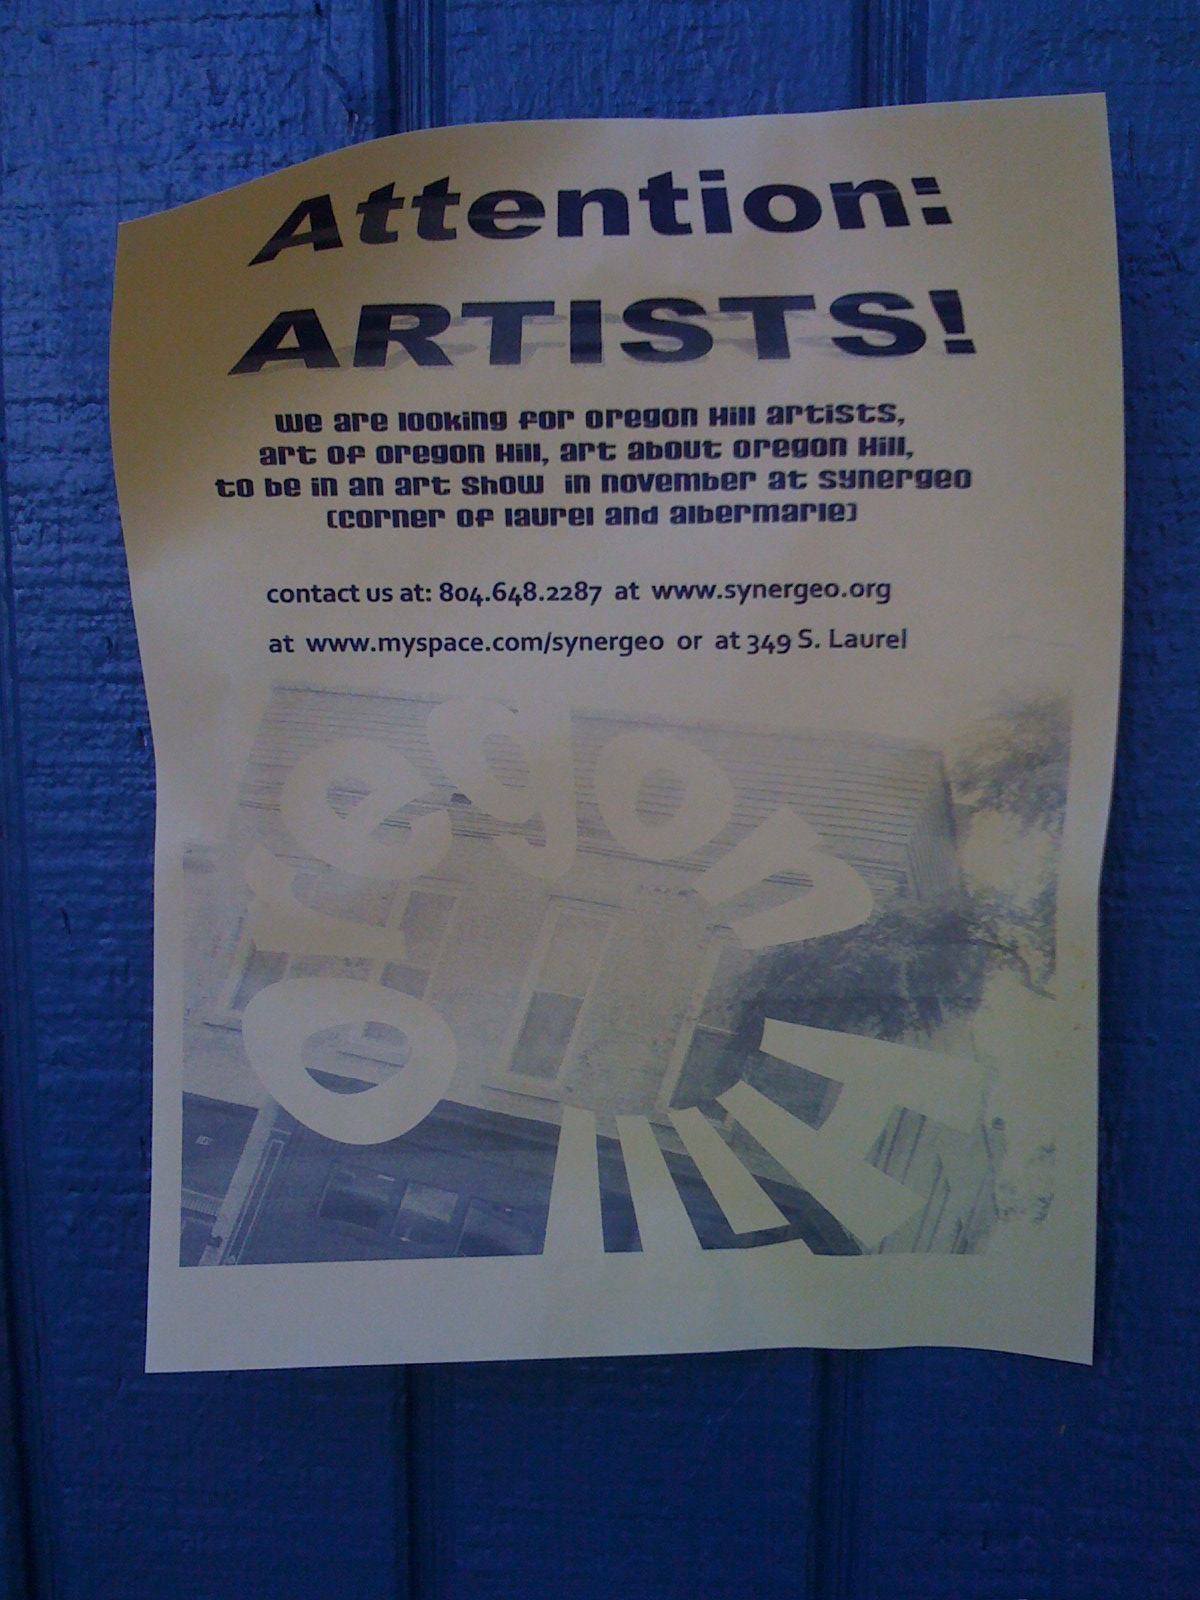 Attention Artists!